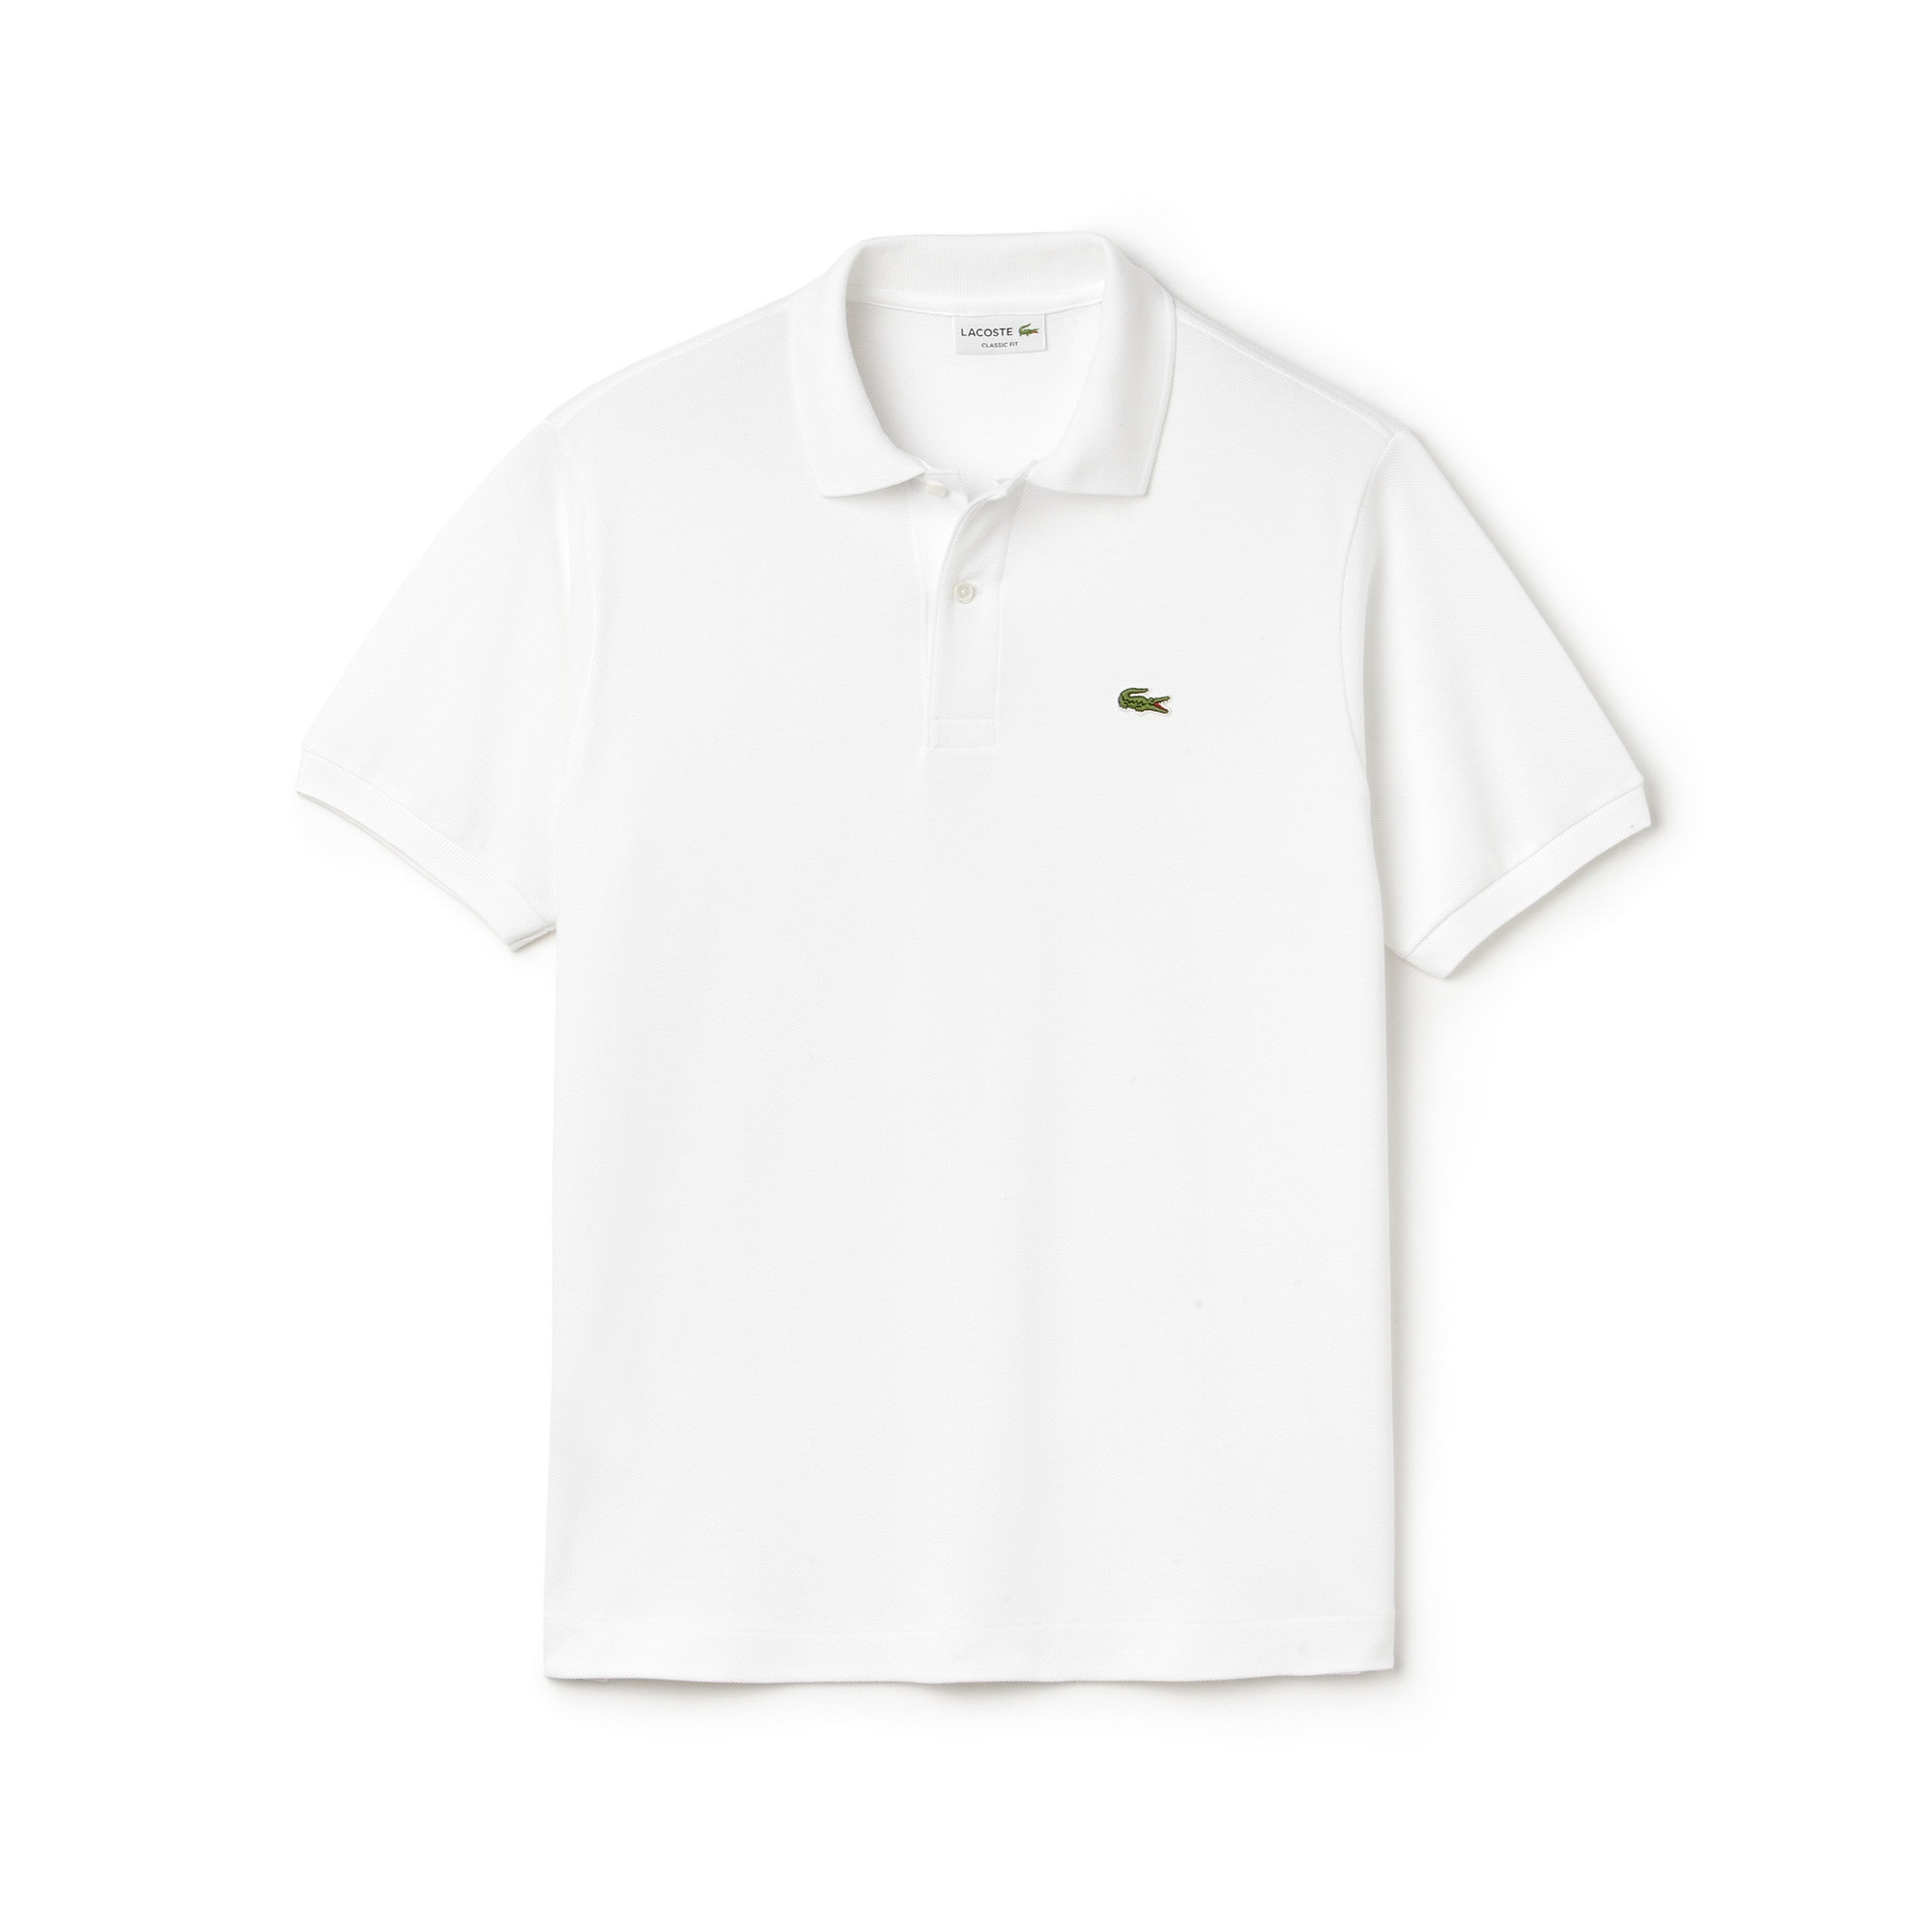 Big Fit Herren-Lacoste-Polo